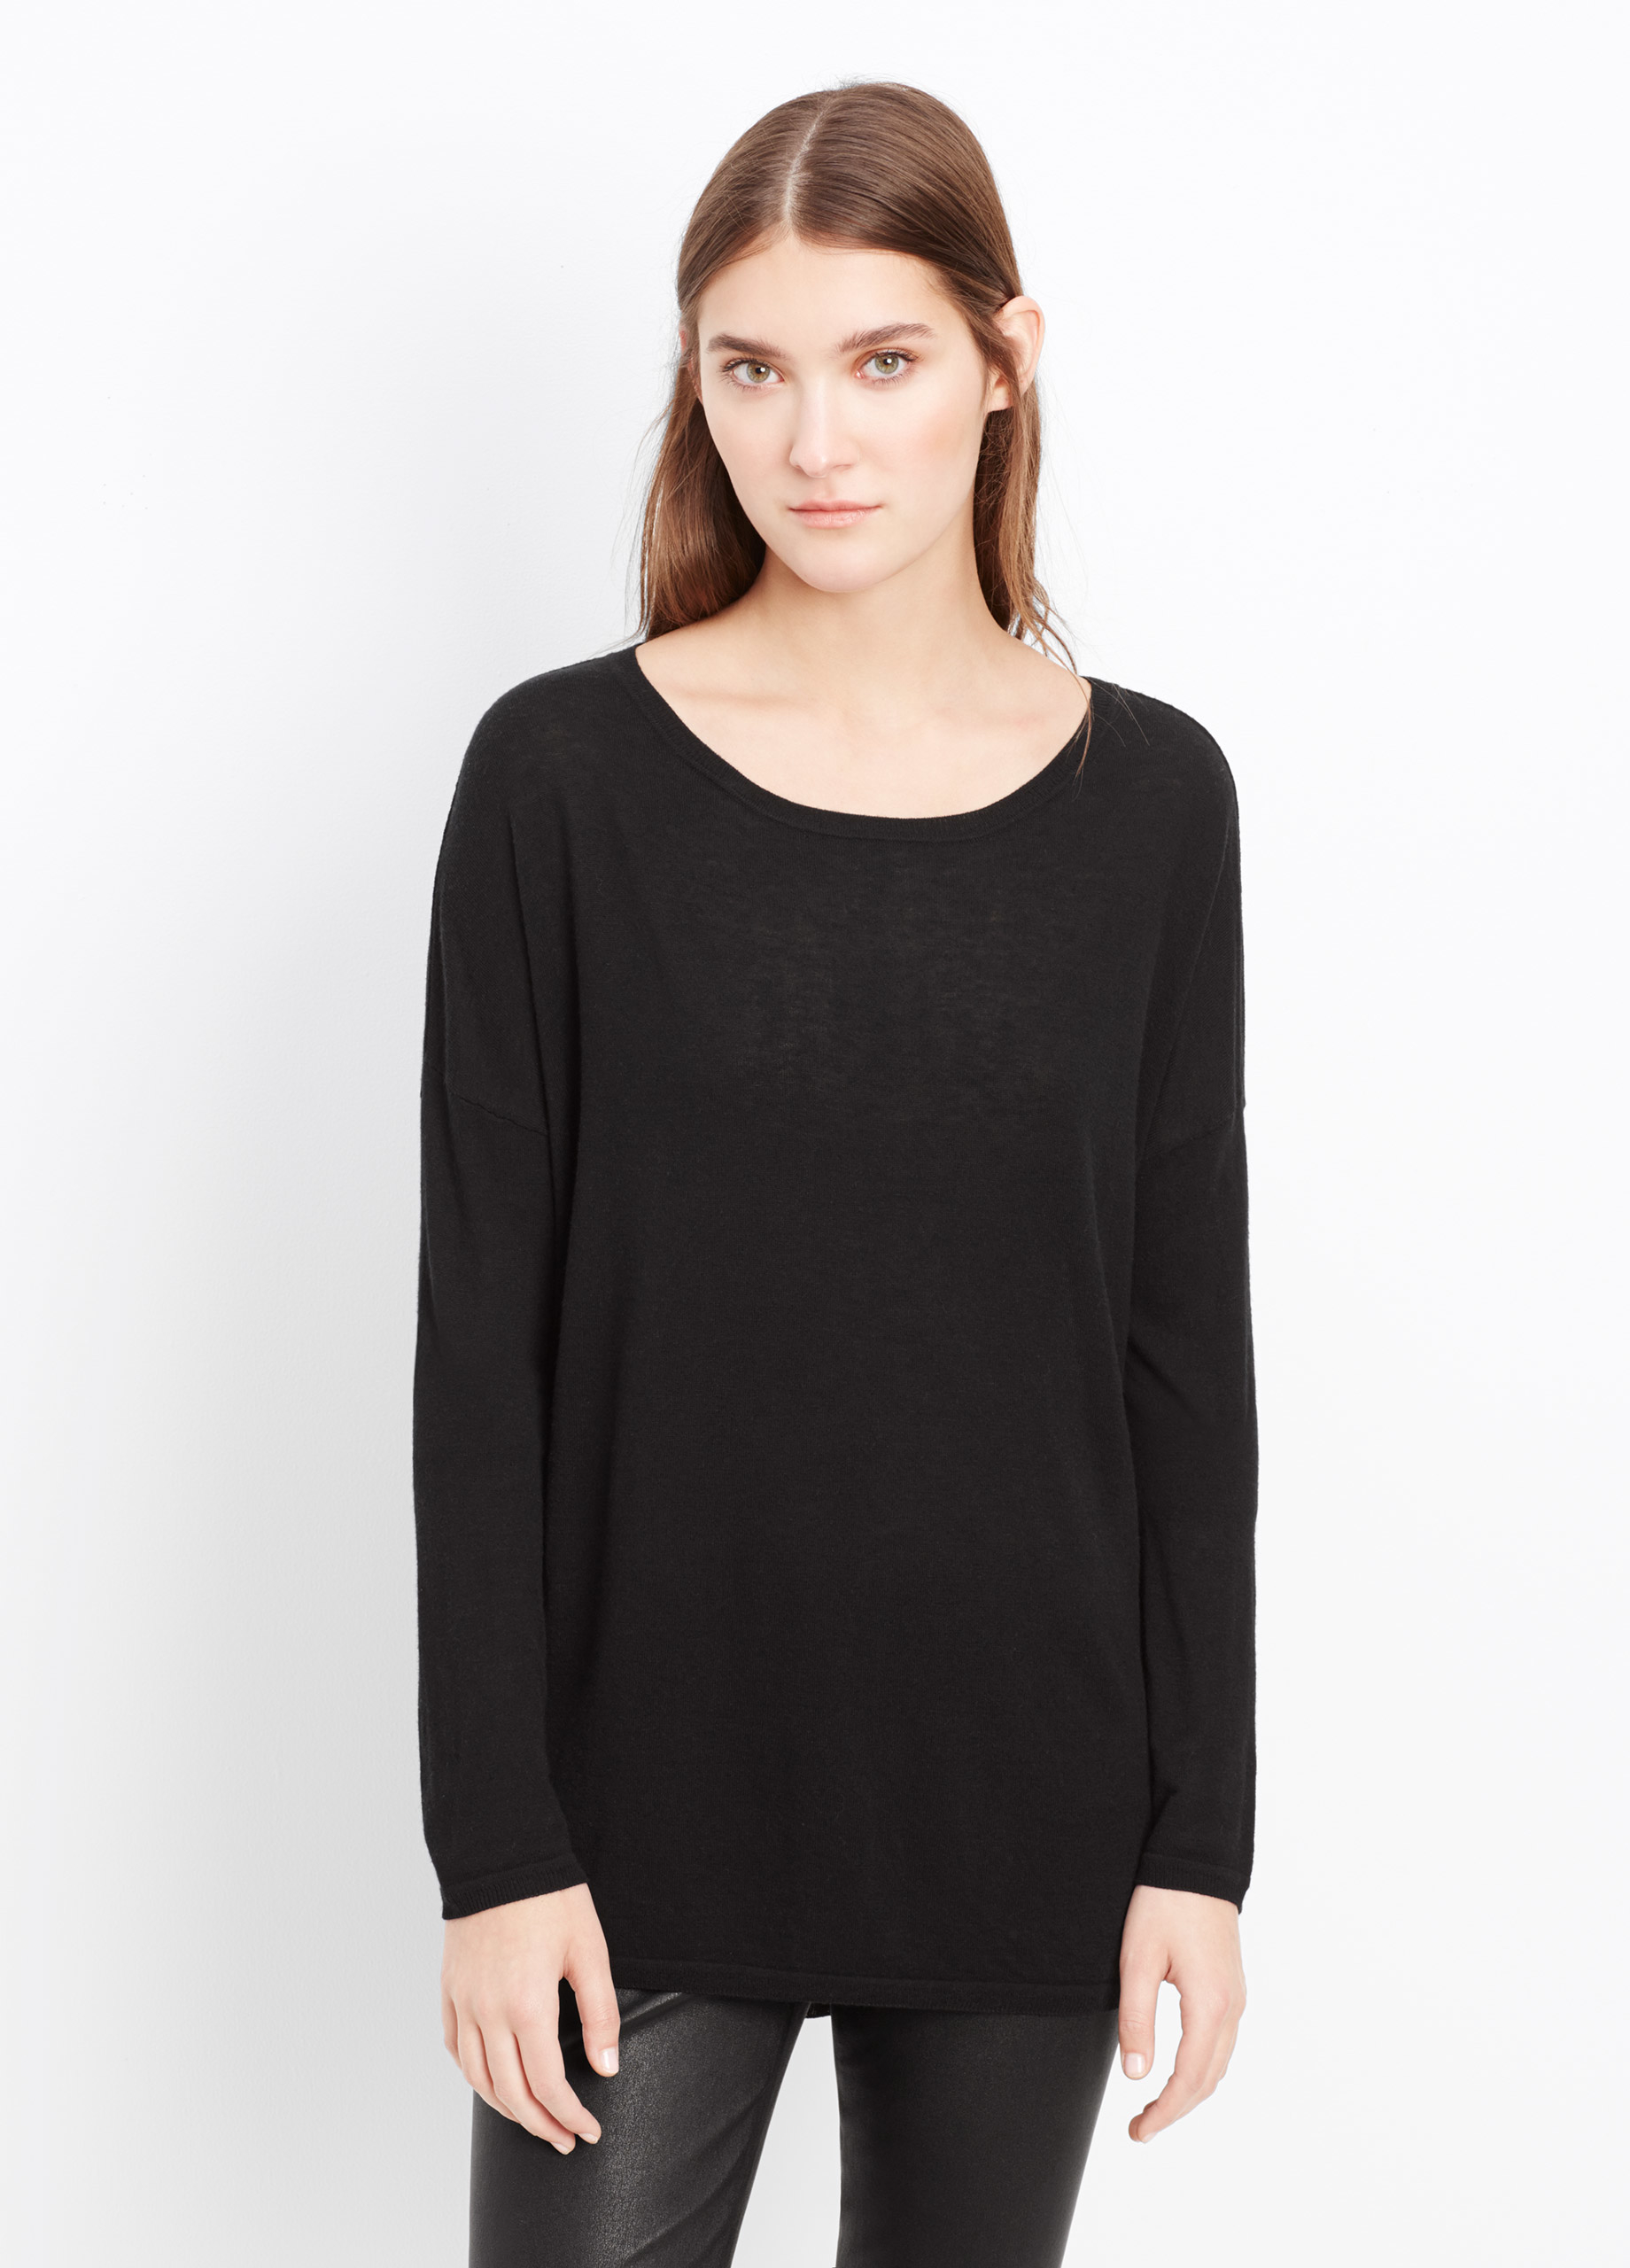 Vince Superfine Merino Blend Open Crew Neck Sweater in Black | Lyst